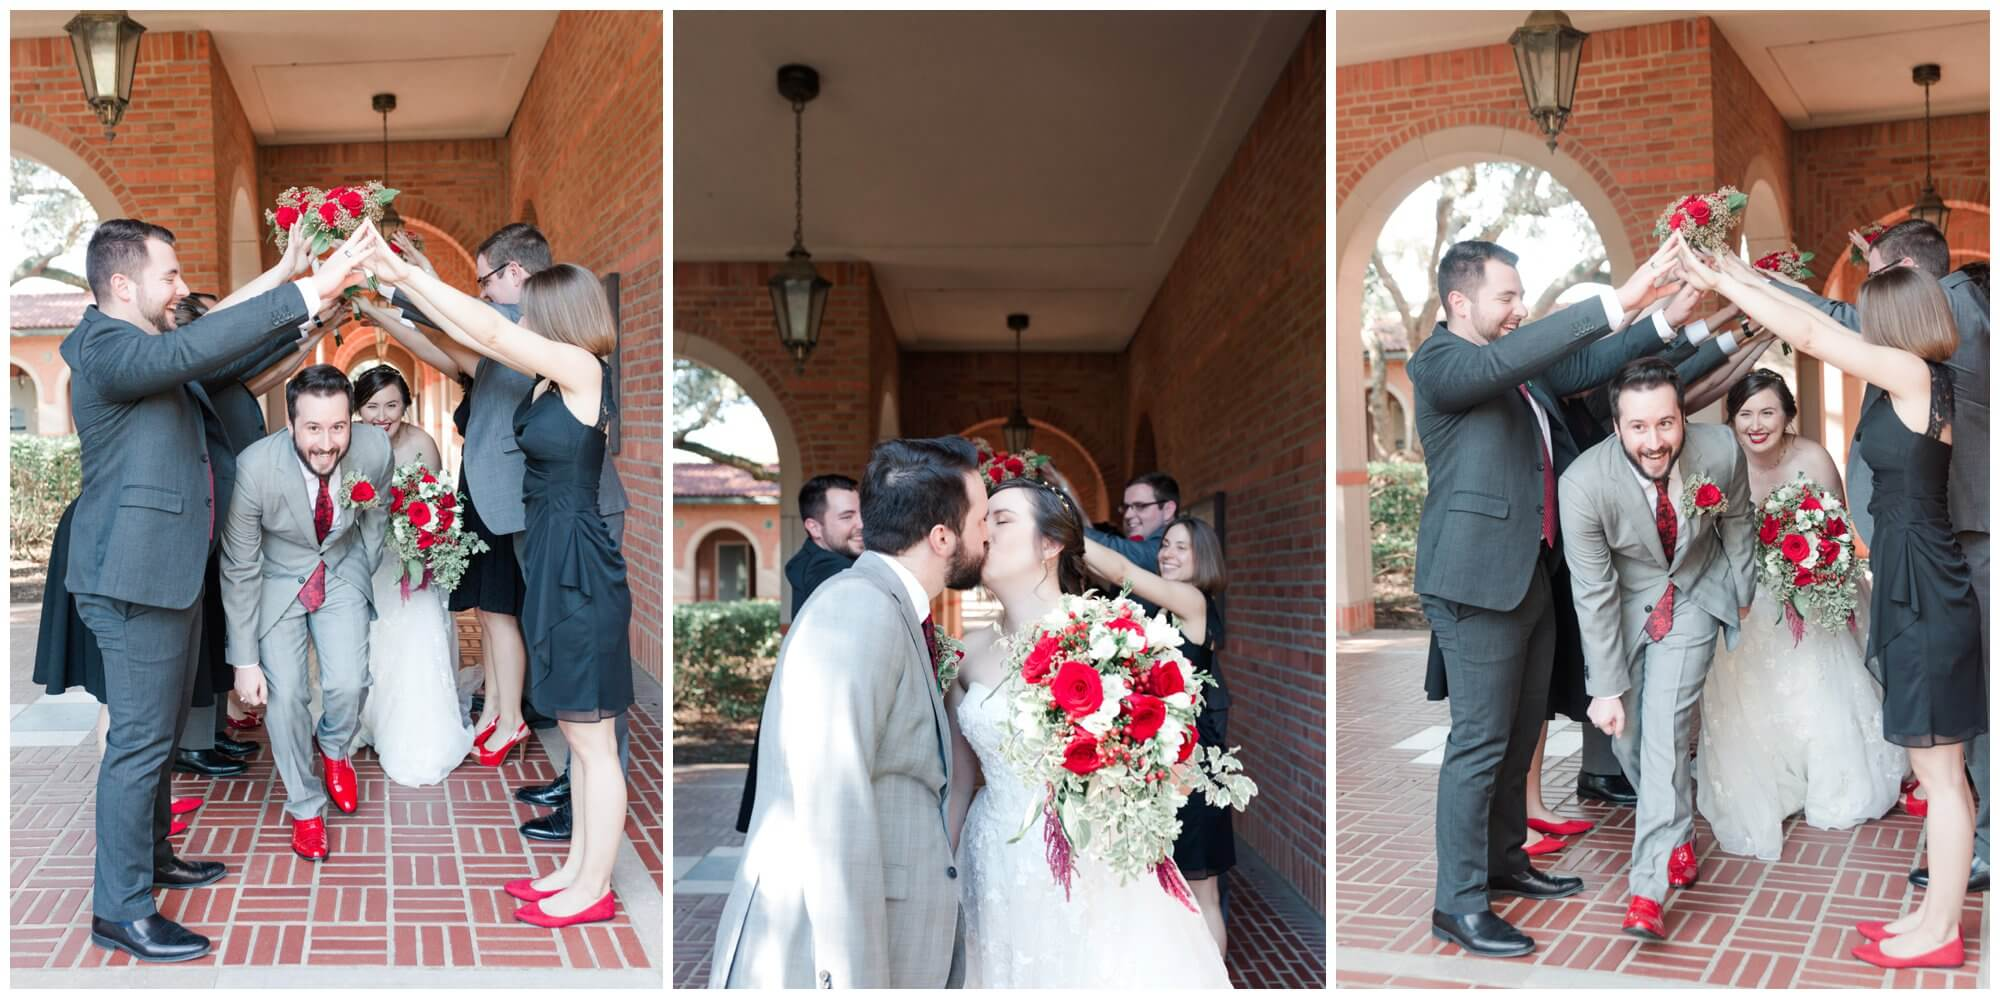 wedding party portraits at Rice University in Houston Texas by Swish and Click Photography